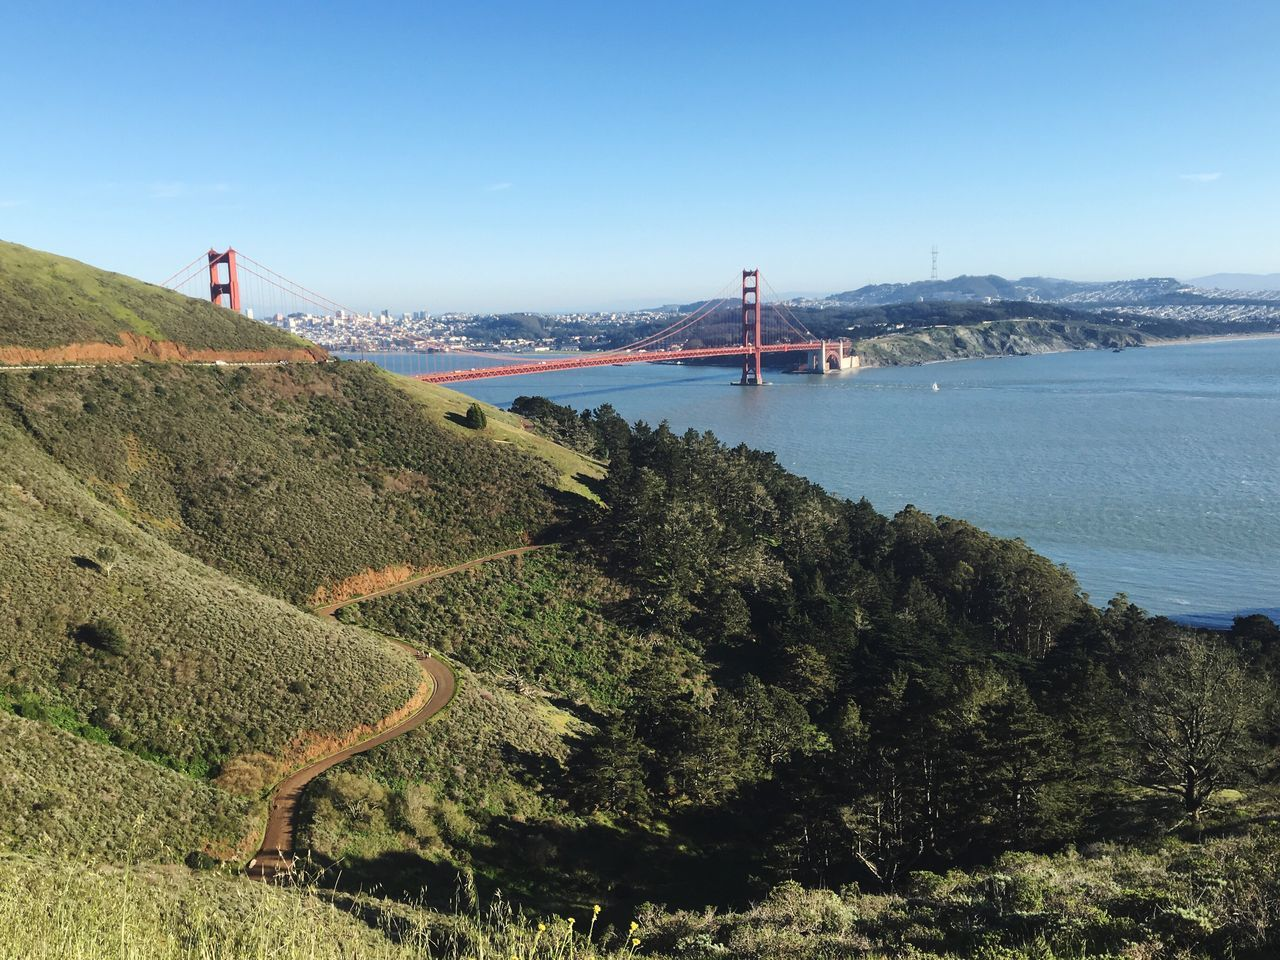 IPhoneography IPhone Photography Iphonephotography Sea Water Clear Sky Built Structure Suspension Bridge Connection Sky Outdoors Architecture Day Beauty In Nature Nature Horizon Over Water Scenics Tree Bridge - Man Made Structure Beach No People Golden Gate Bridge